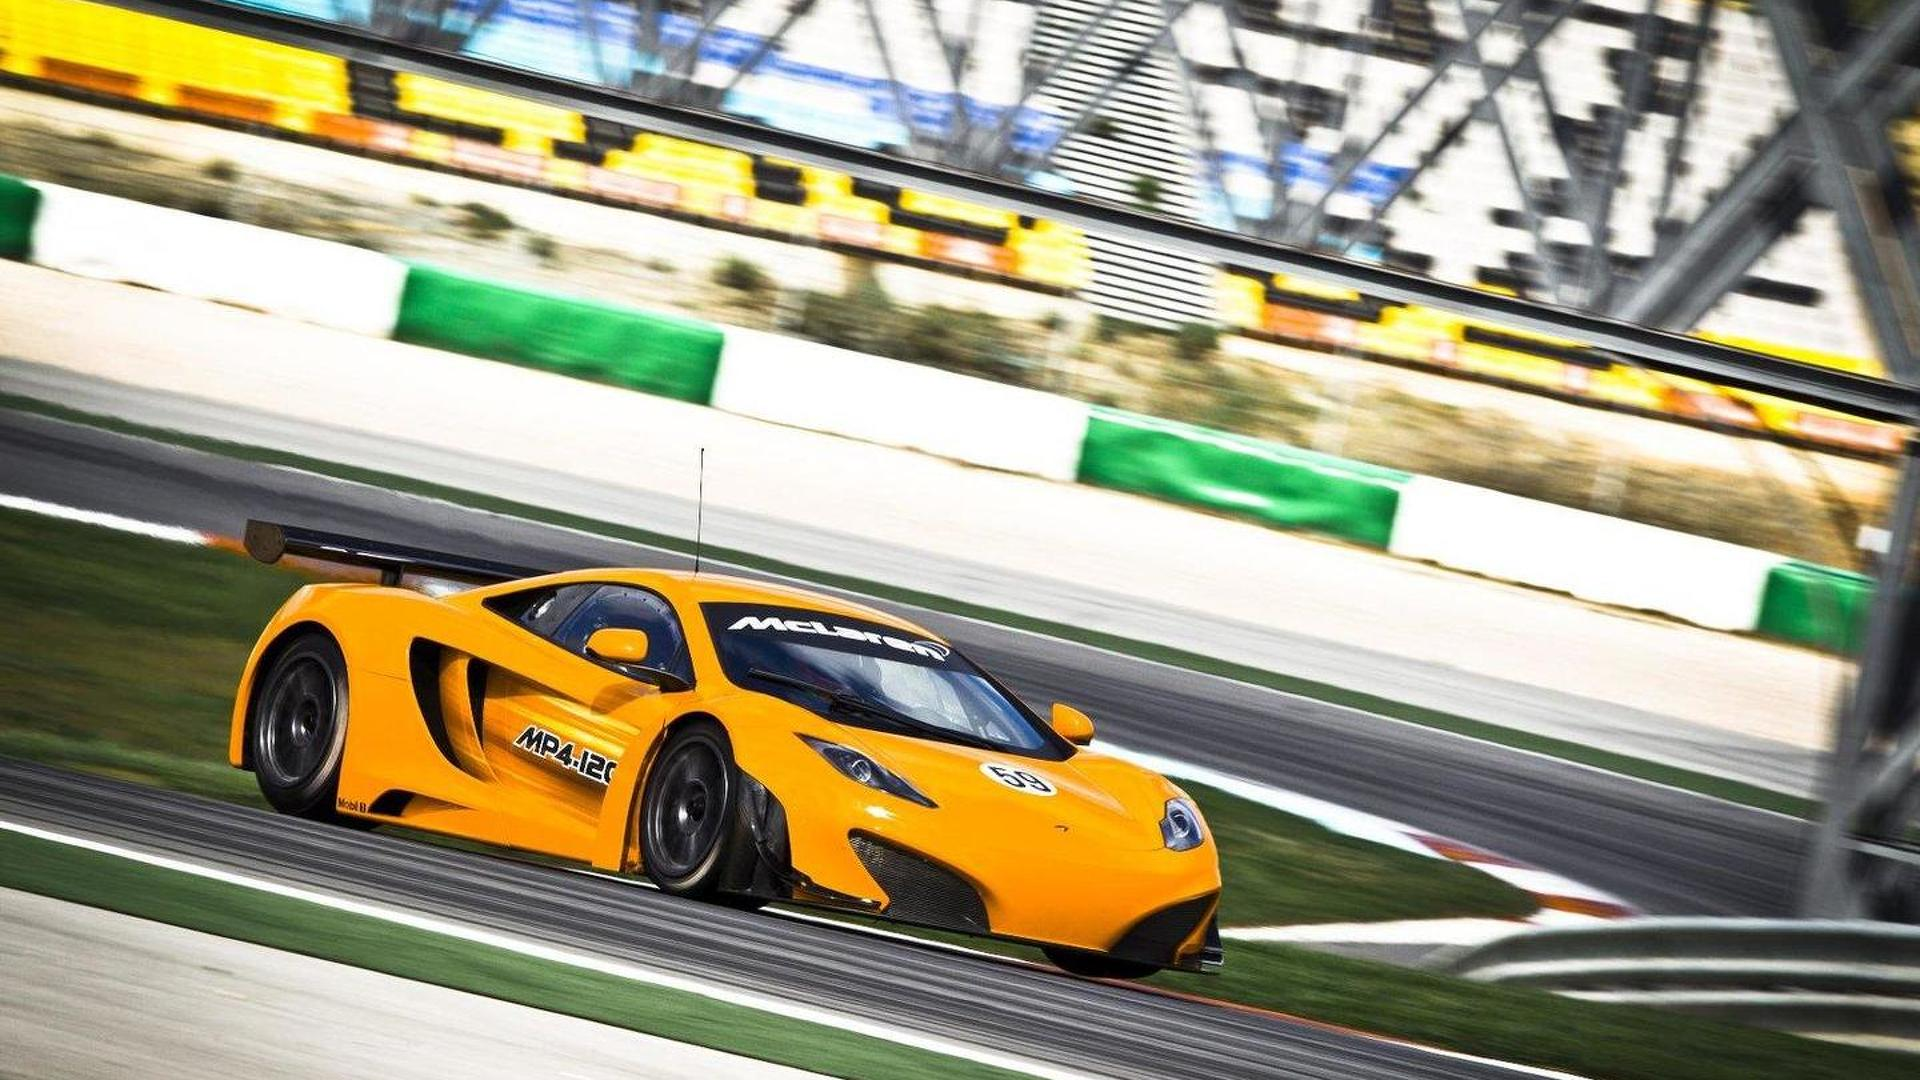 McLaren may build street-legal variant of MP4-12C GT3 Racecar